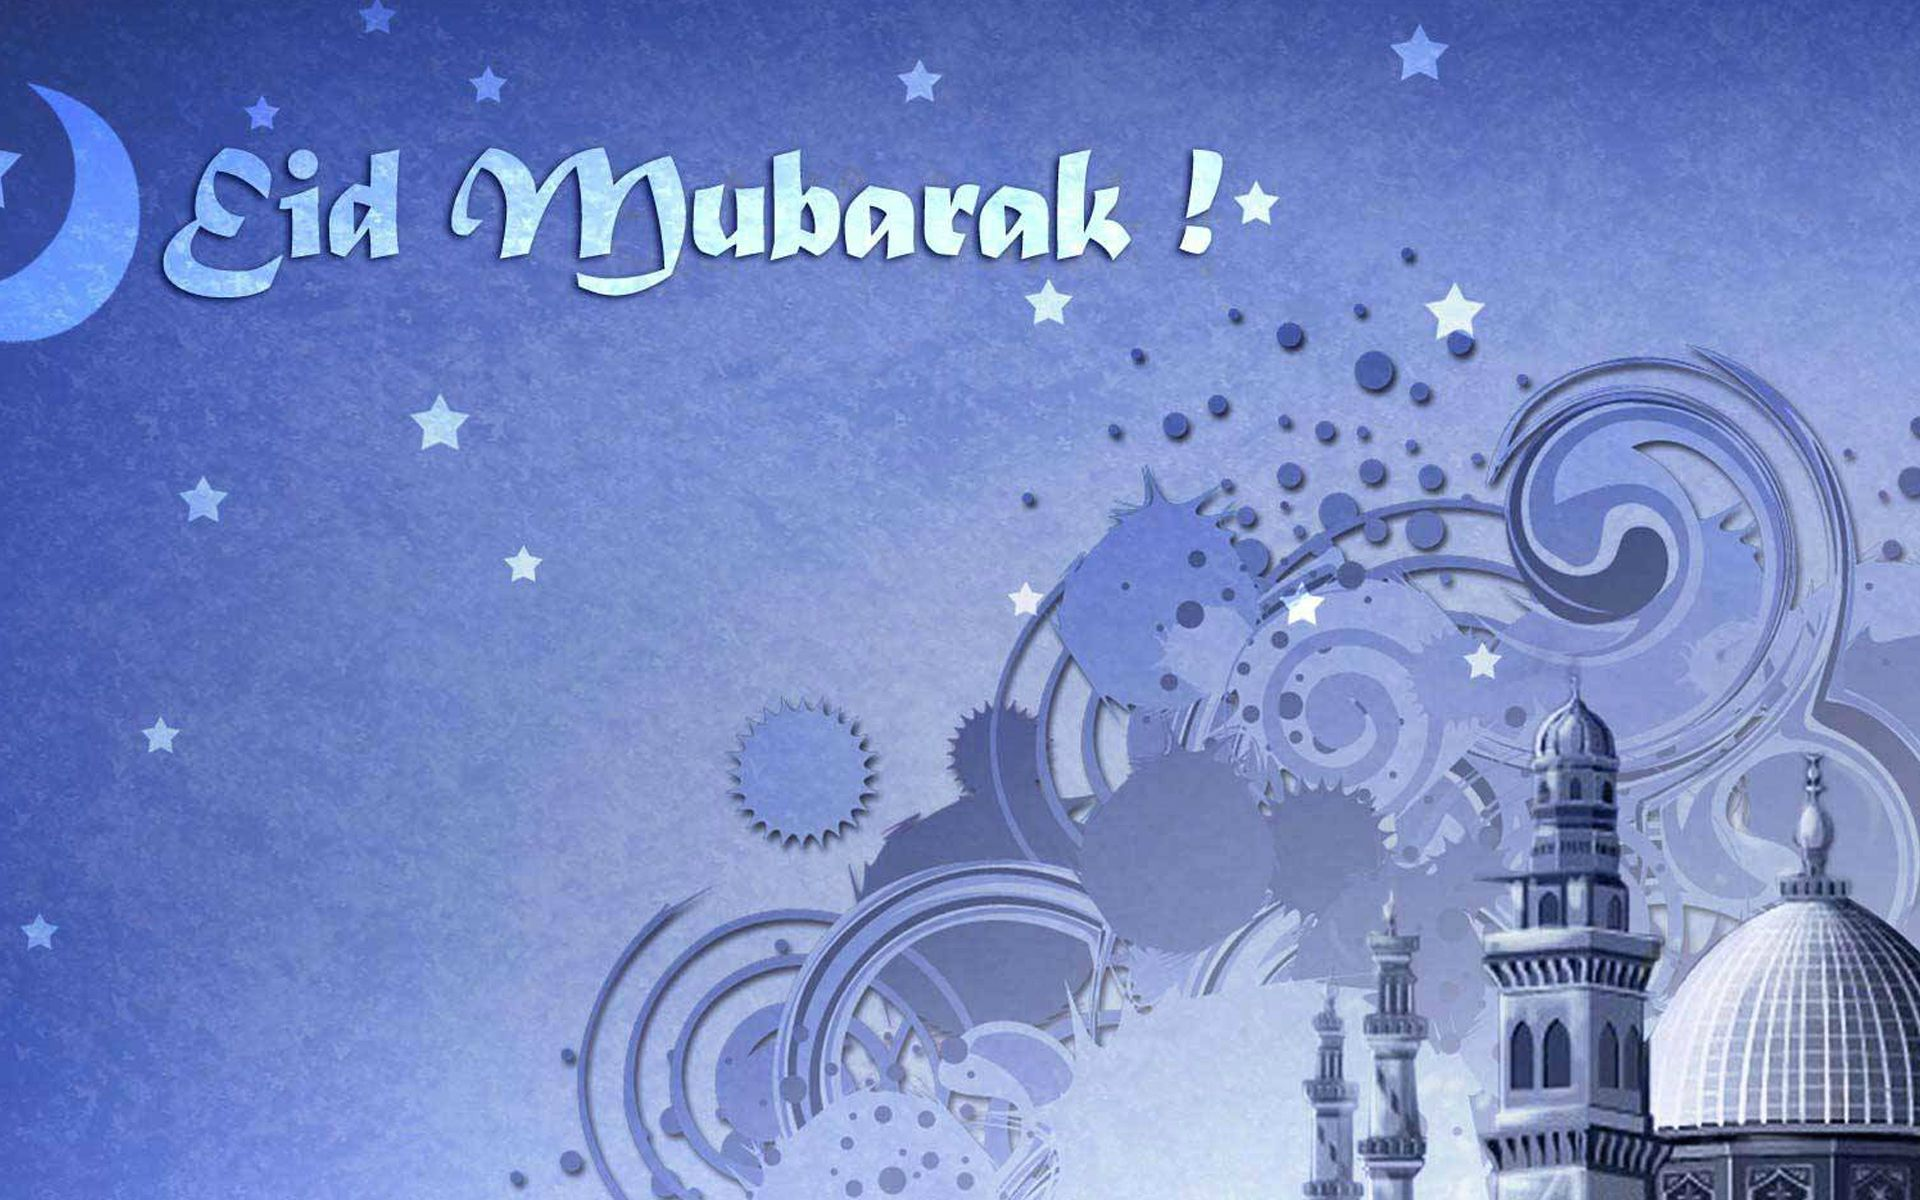 Eid mubarak images whatsapp whatsapp eid mubarak images whatsapp eid mubarak images whatsapp whatsapp eid mubarak images whatsapp eid mubarak messages messages kristyandbryce Image collections